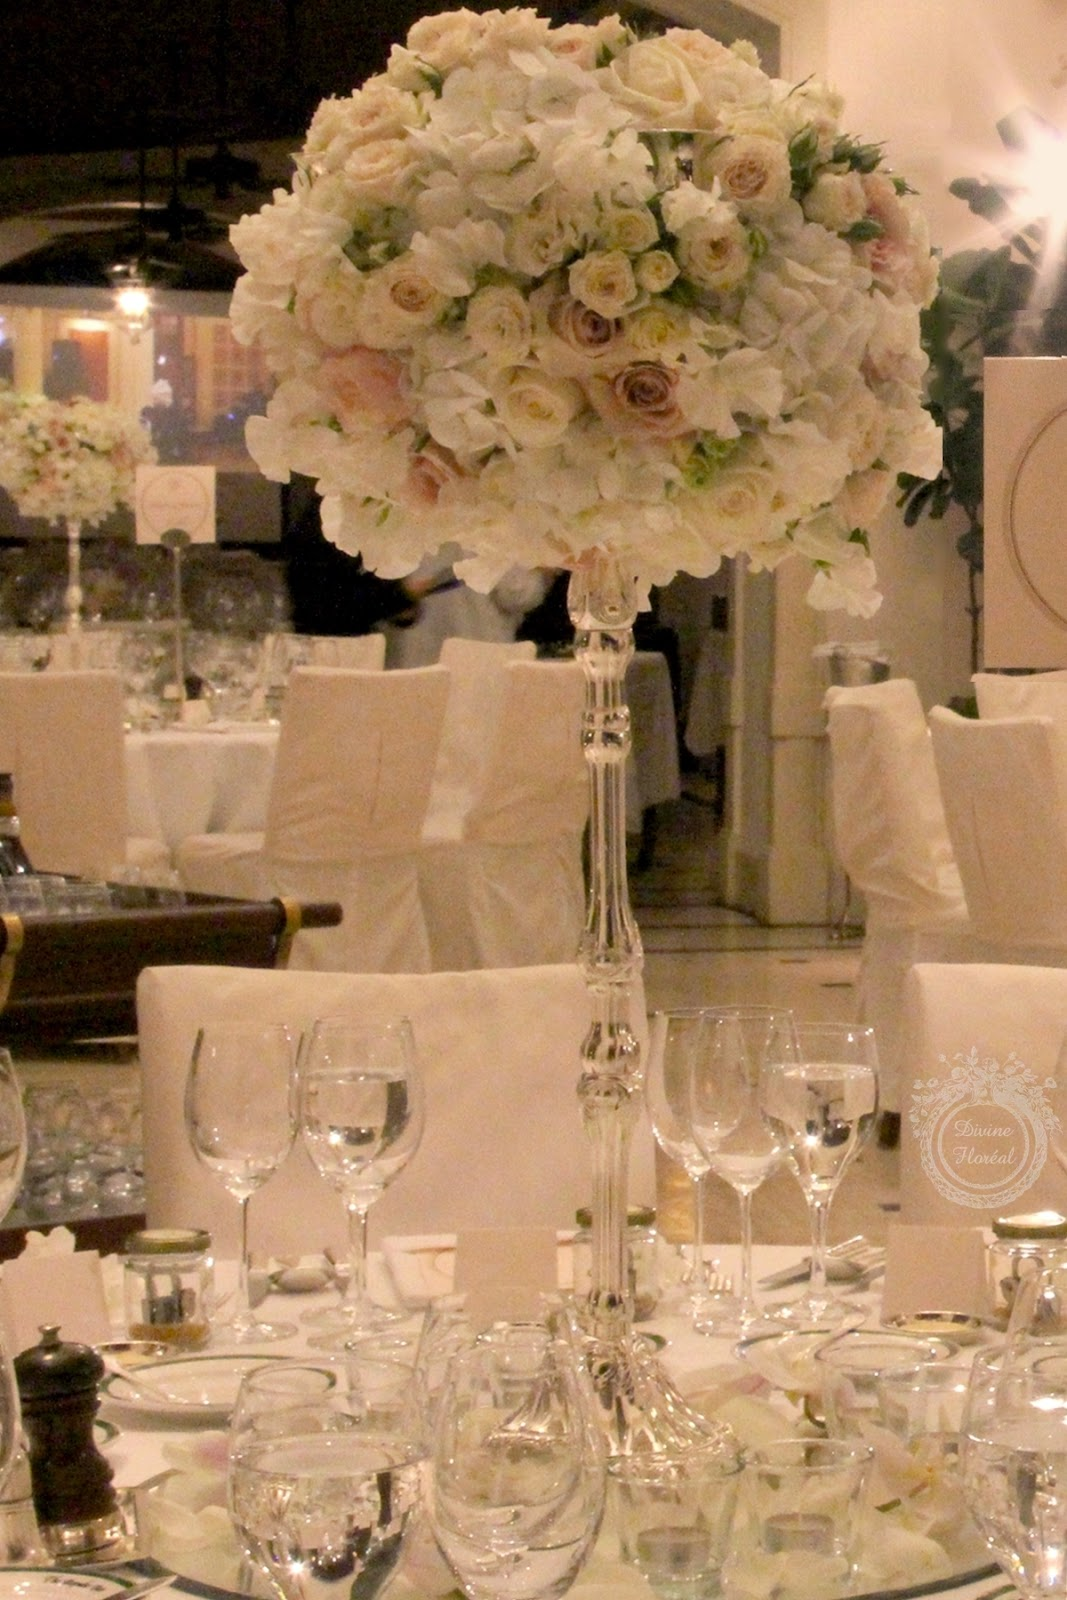 Divine floral dreamy parisian wedding at repulse bay glamorous tall silver candelabra centerpieces for the head tables in the center arubaitofo Choice Image